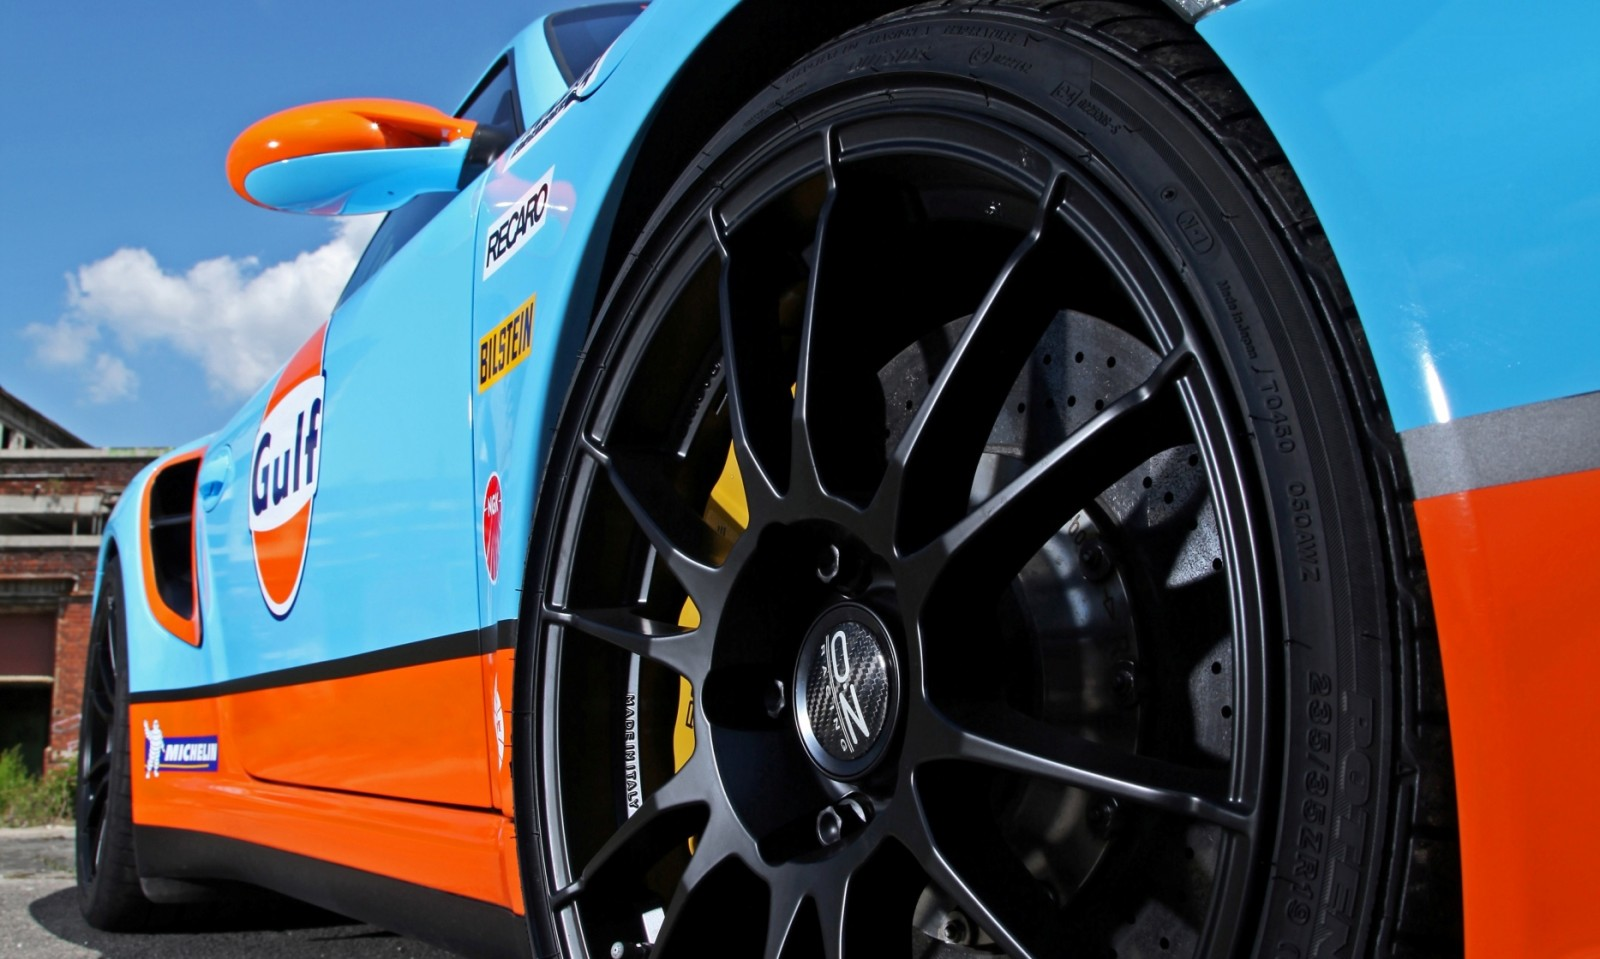 Gulf Racing Livery by CAM SHAFT for the Porsche 911 Turbo 2